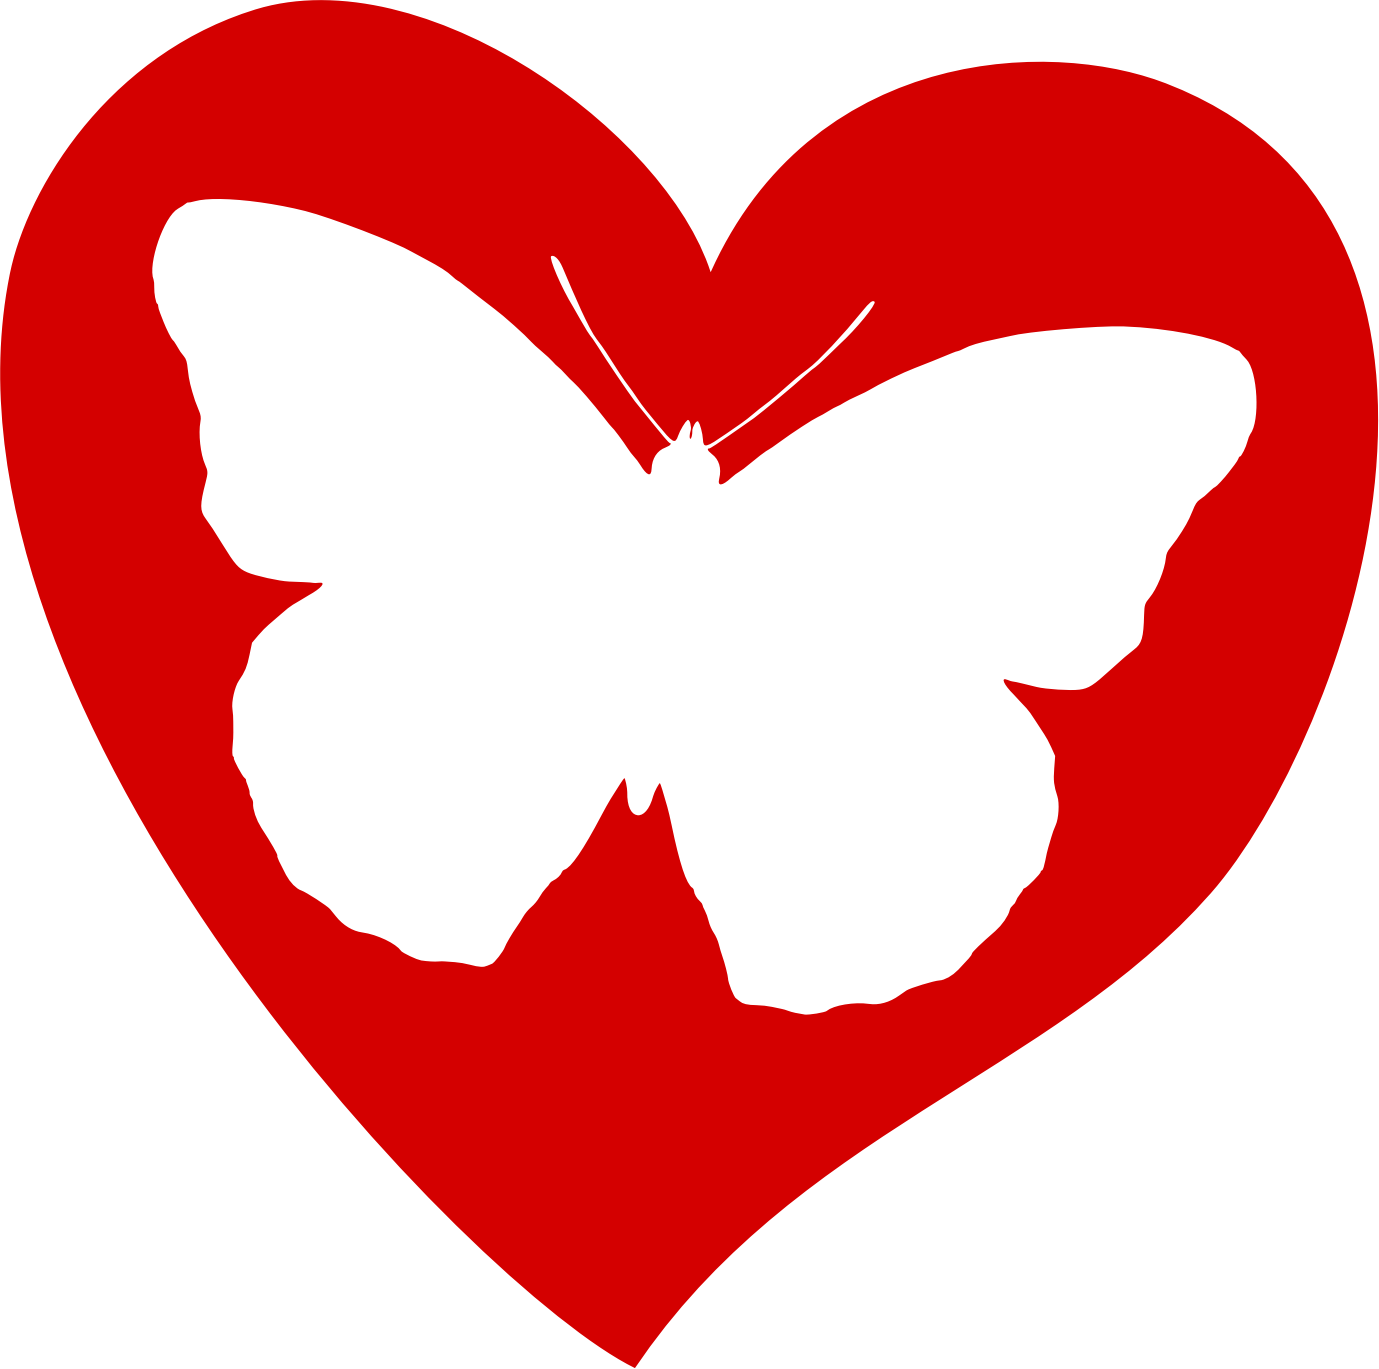 Butterfly hearts clipart picture library stock Butterfly hearts clipart - ClipartFest picture library stock